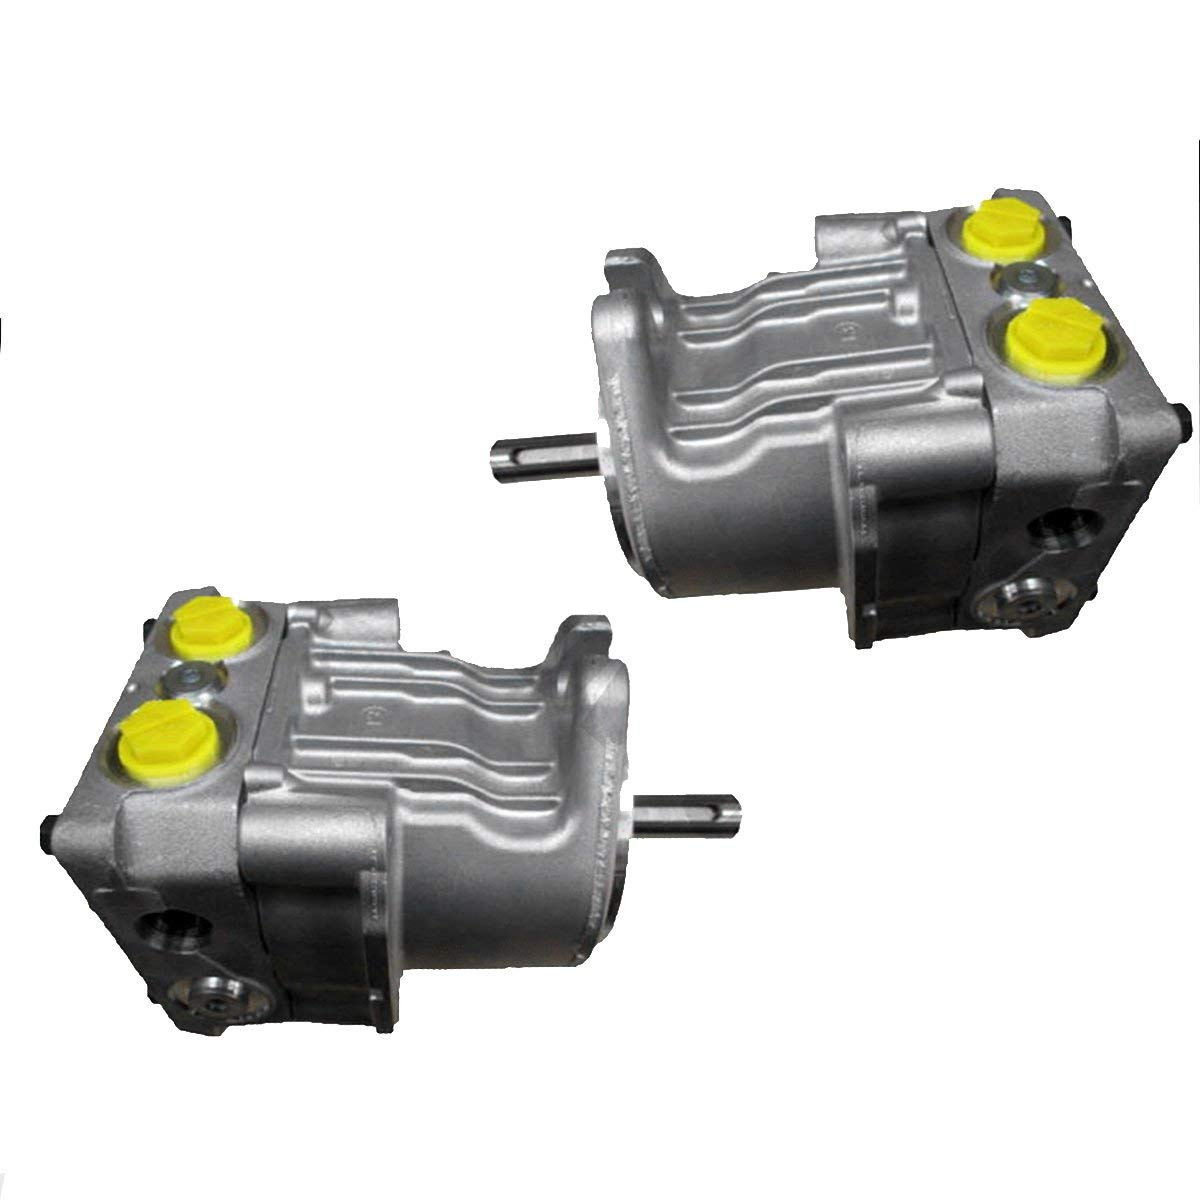 Hydro Gear Pump (Right & Left) Kit 10cc eXmark Turf Tracer Lawn Mowers & Others / PG-1JQQ-DY1X-XXXX, PG-1GQQ-DY1X-XXXX